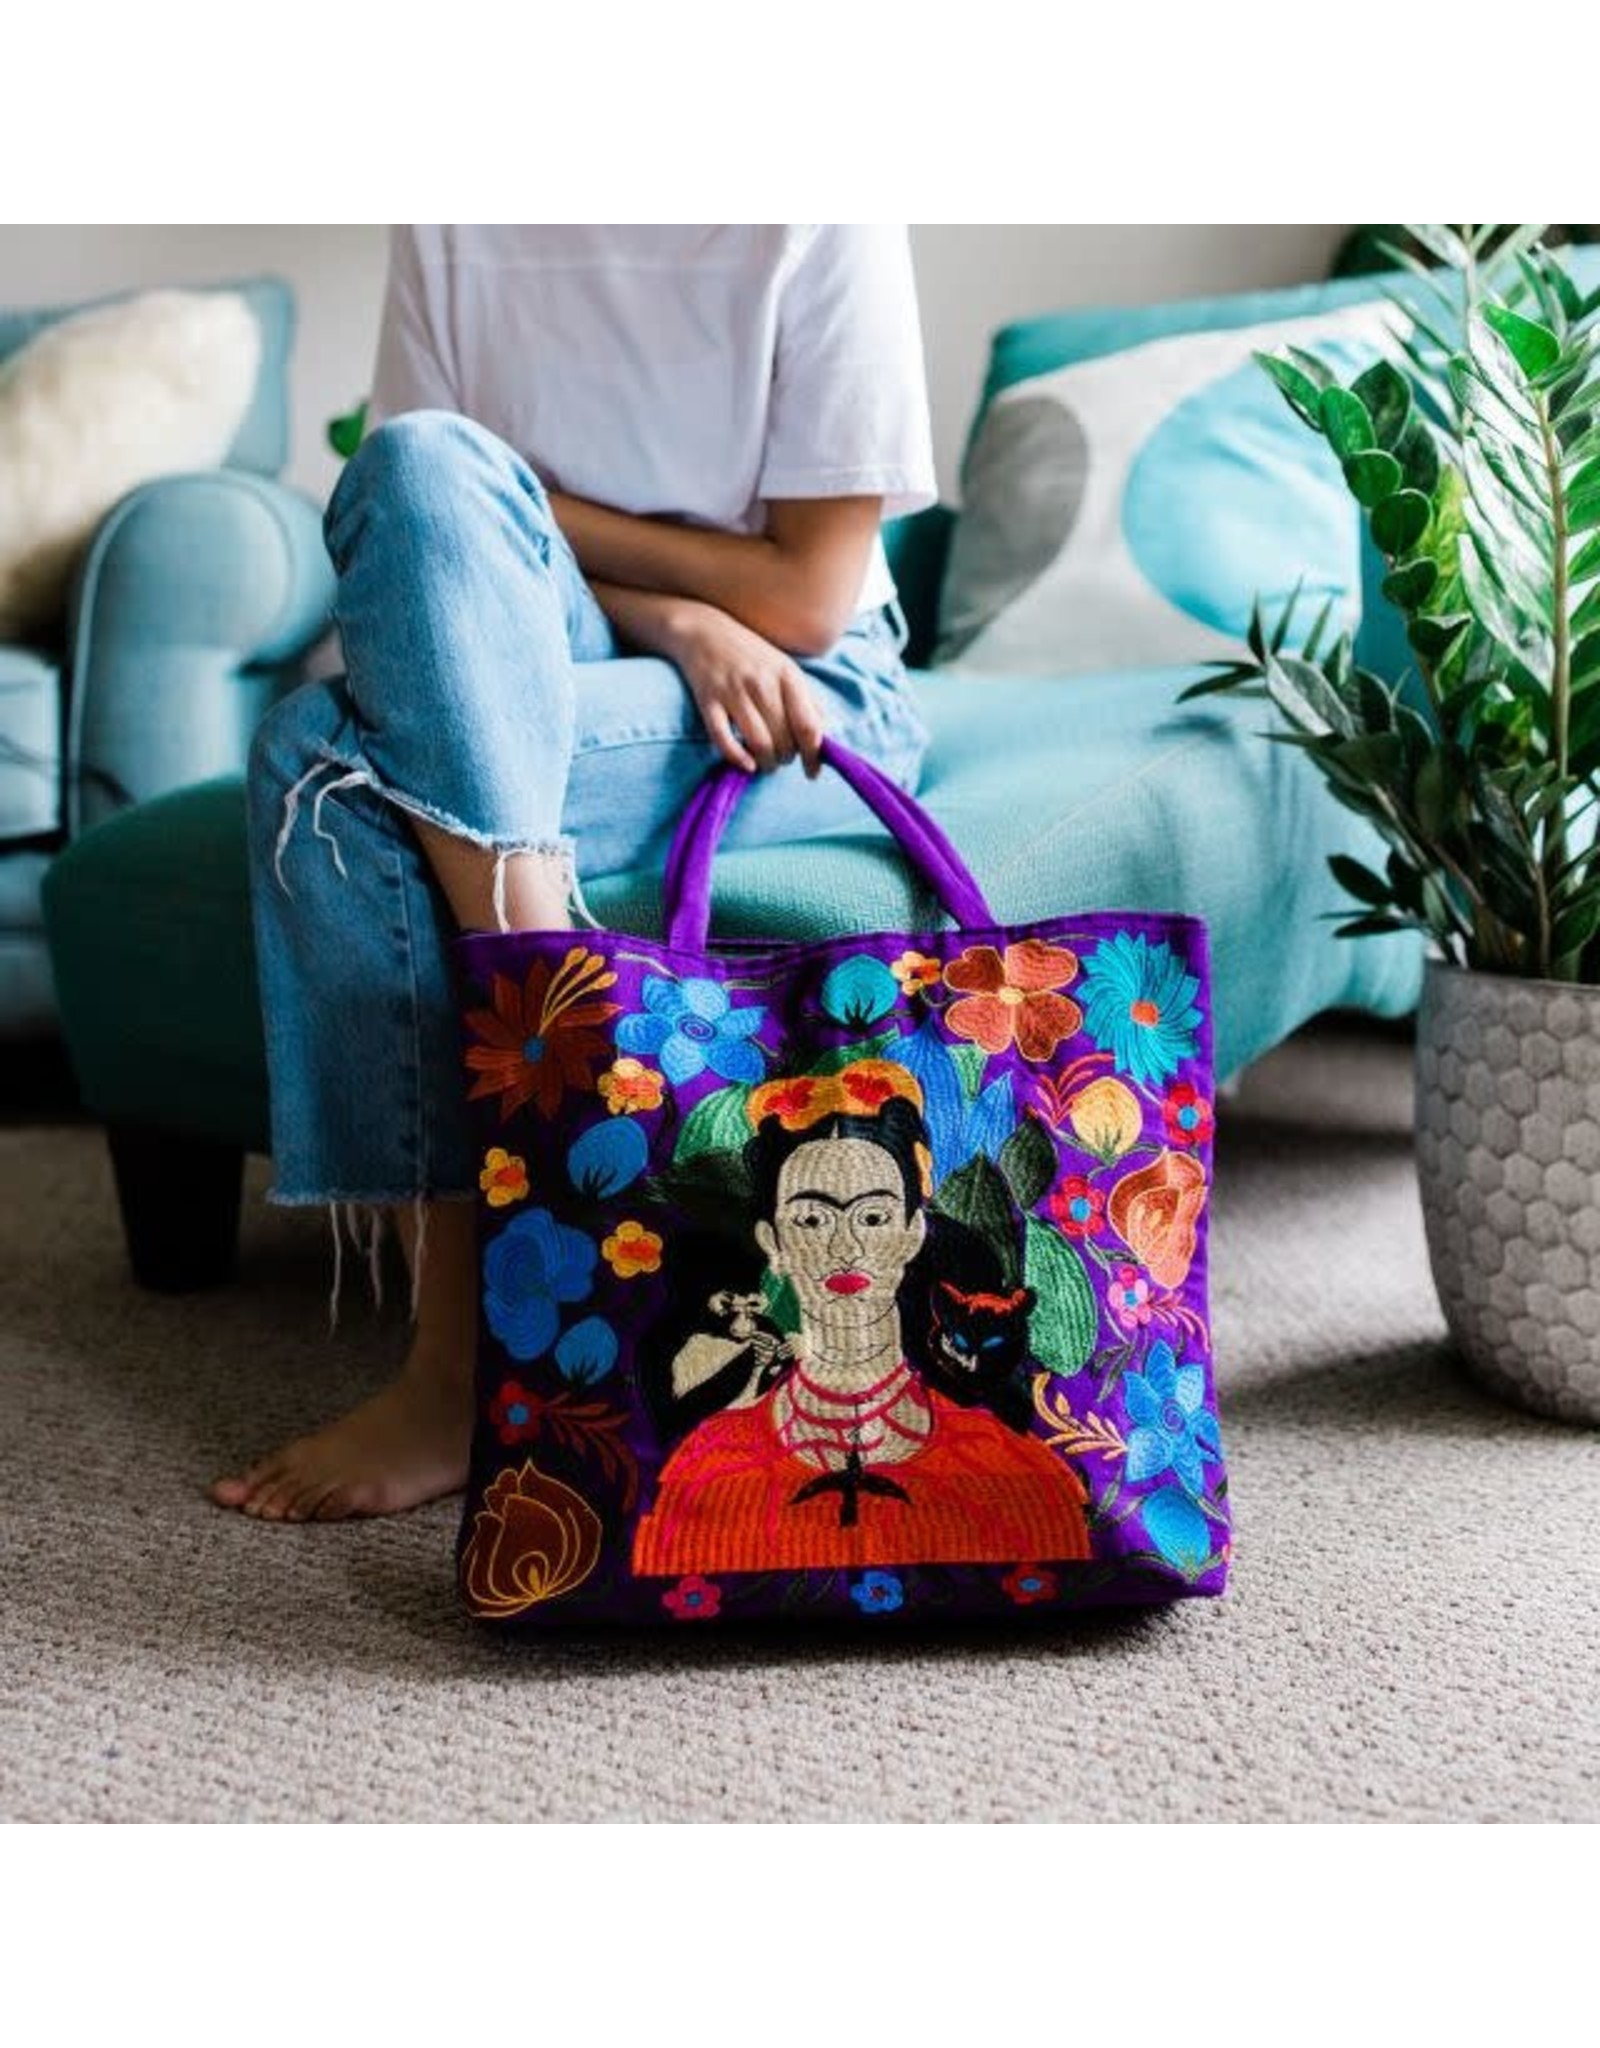 Frida Kahlo Embroidered Tote Bag, Guatemala